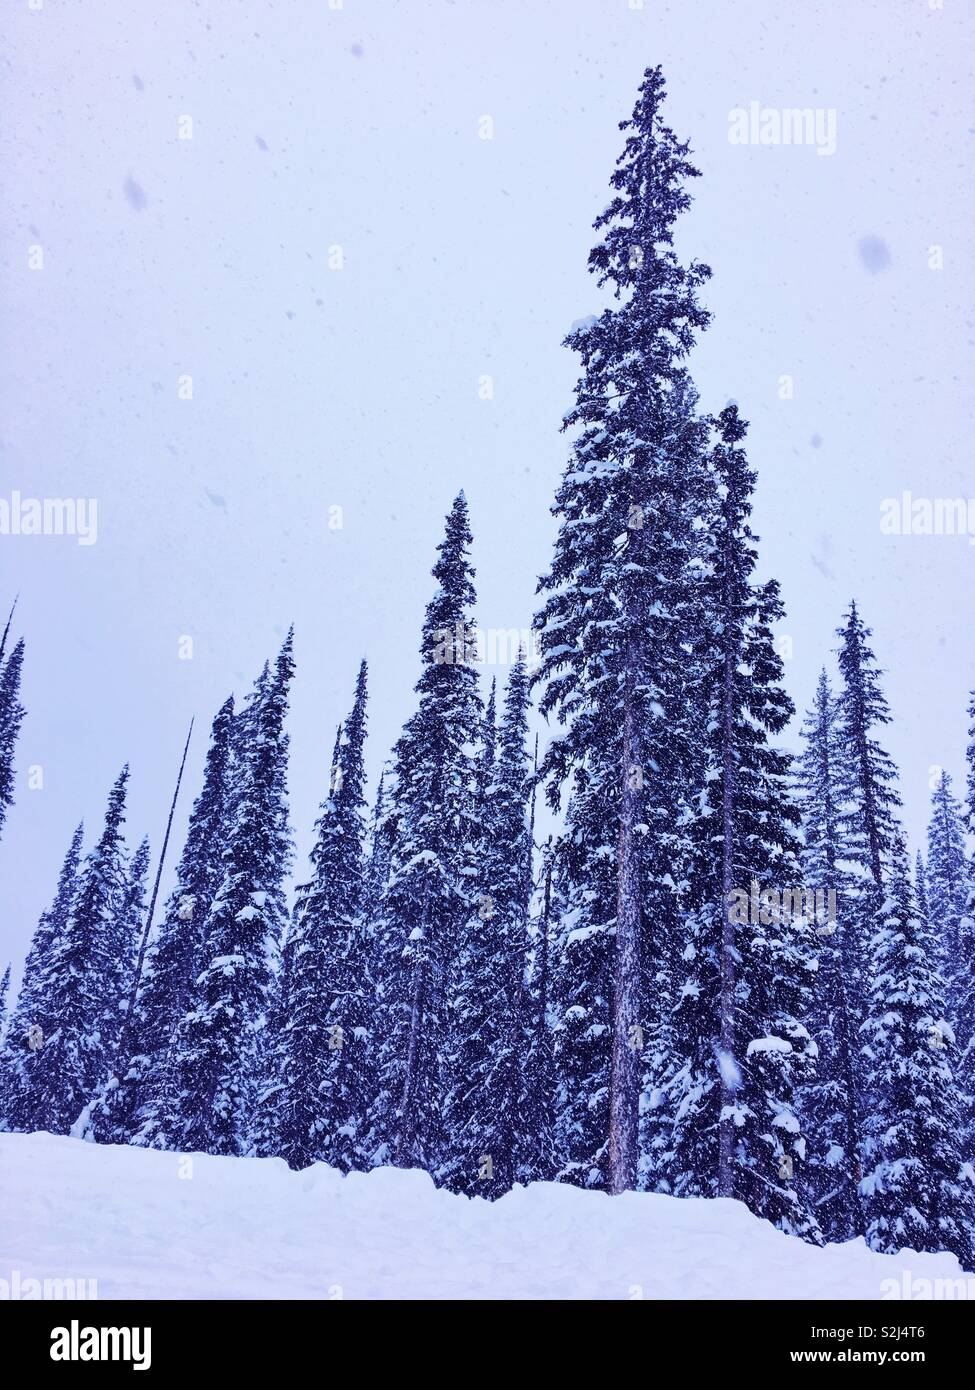 Tall snow covered evergreen trees during a snow fall. - Stock Image